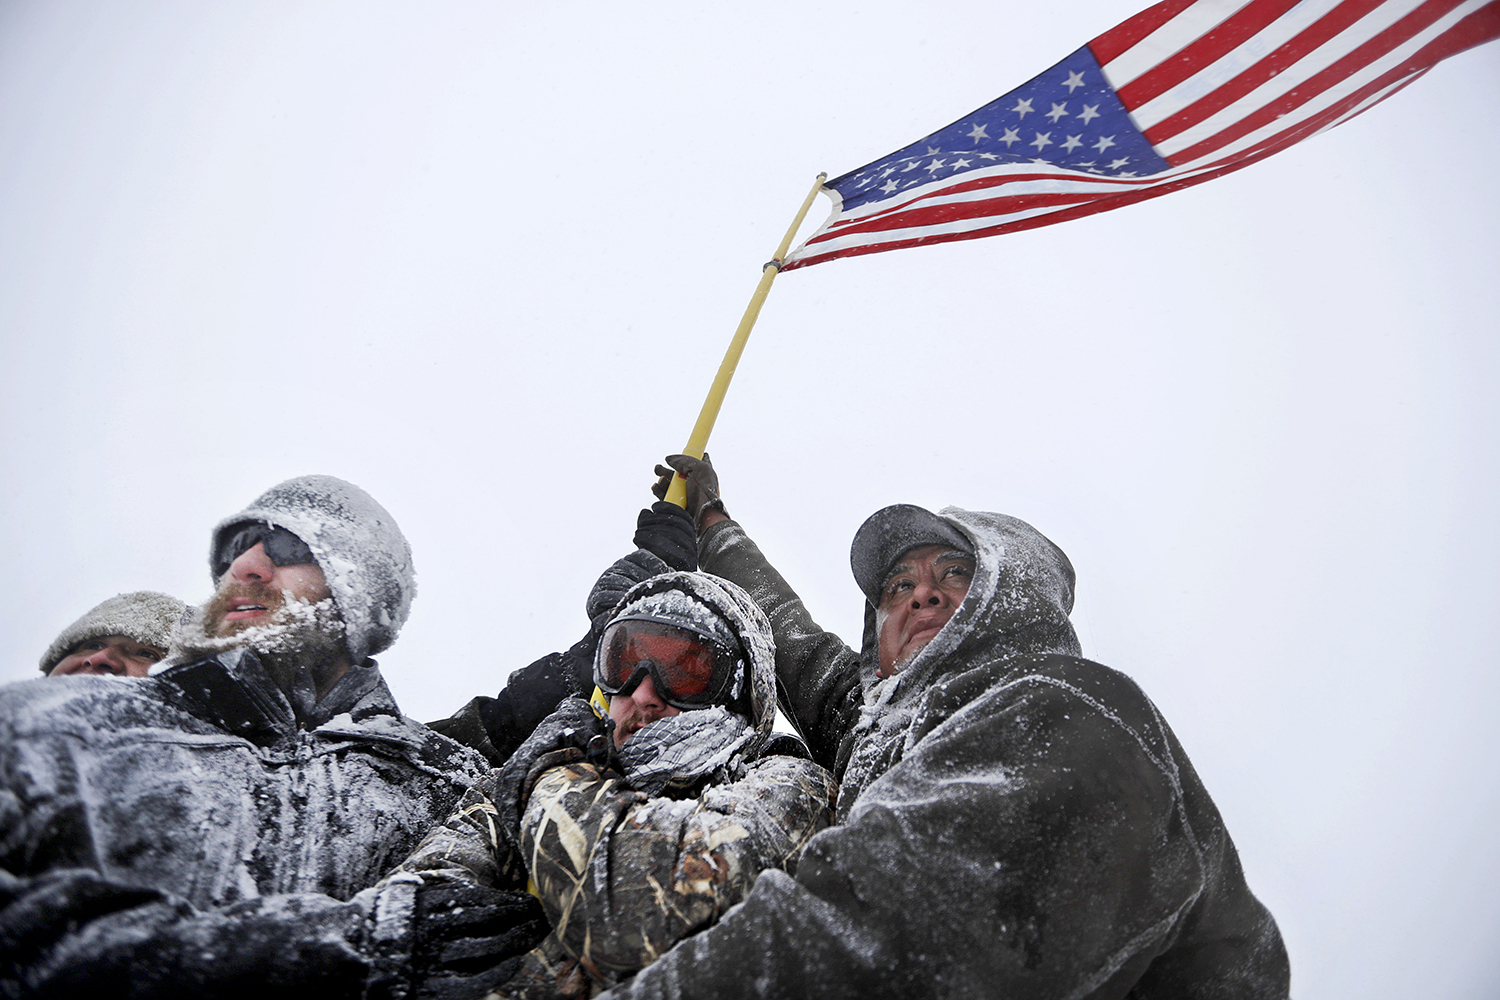 Military veterans huddle together to hold a United States flag against strong winds during a march to a closed bridge outside the Oceti Sakowin camp where people have gathered to protest the Dakota Access oil pipeline in Cannon Ball, N.D., Monday, Dec. 5, 2016. (AP Photo/David Goldman)